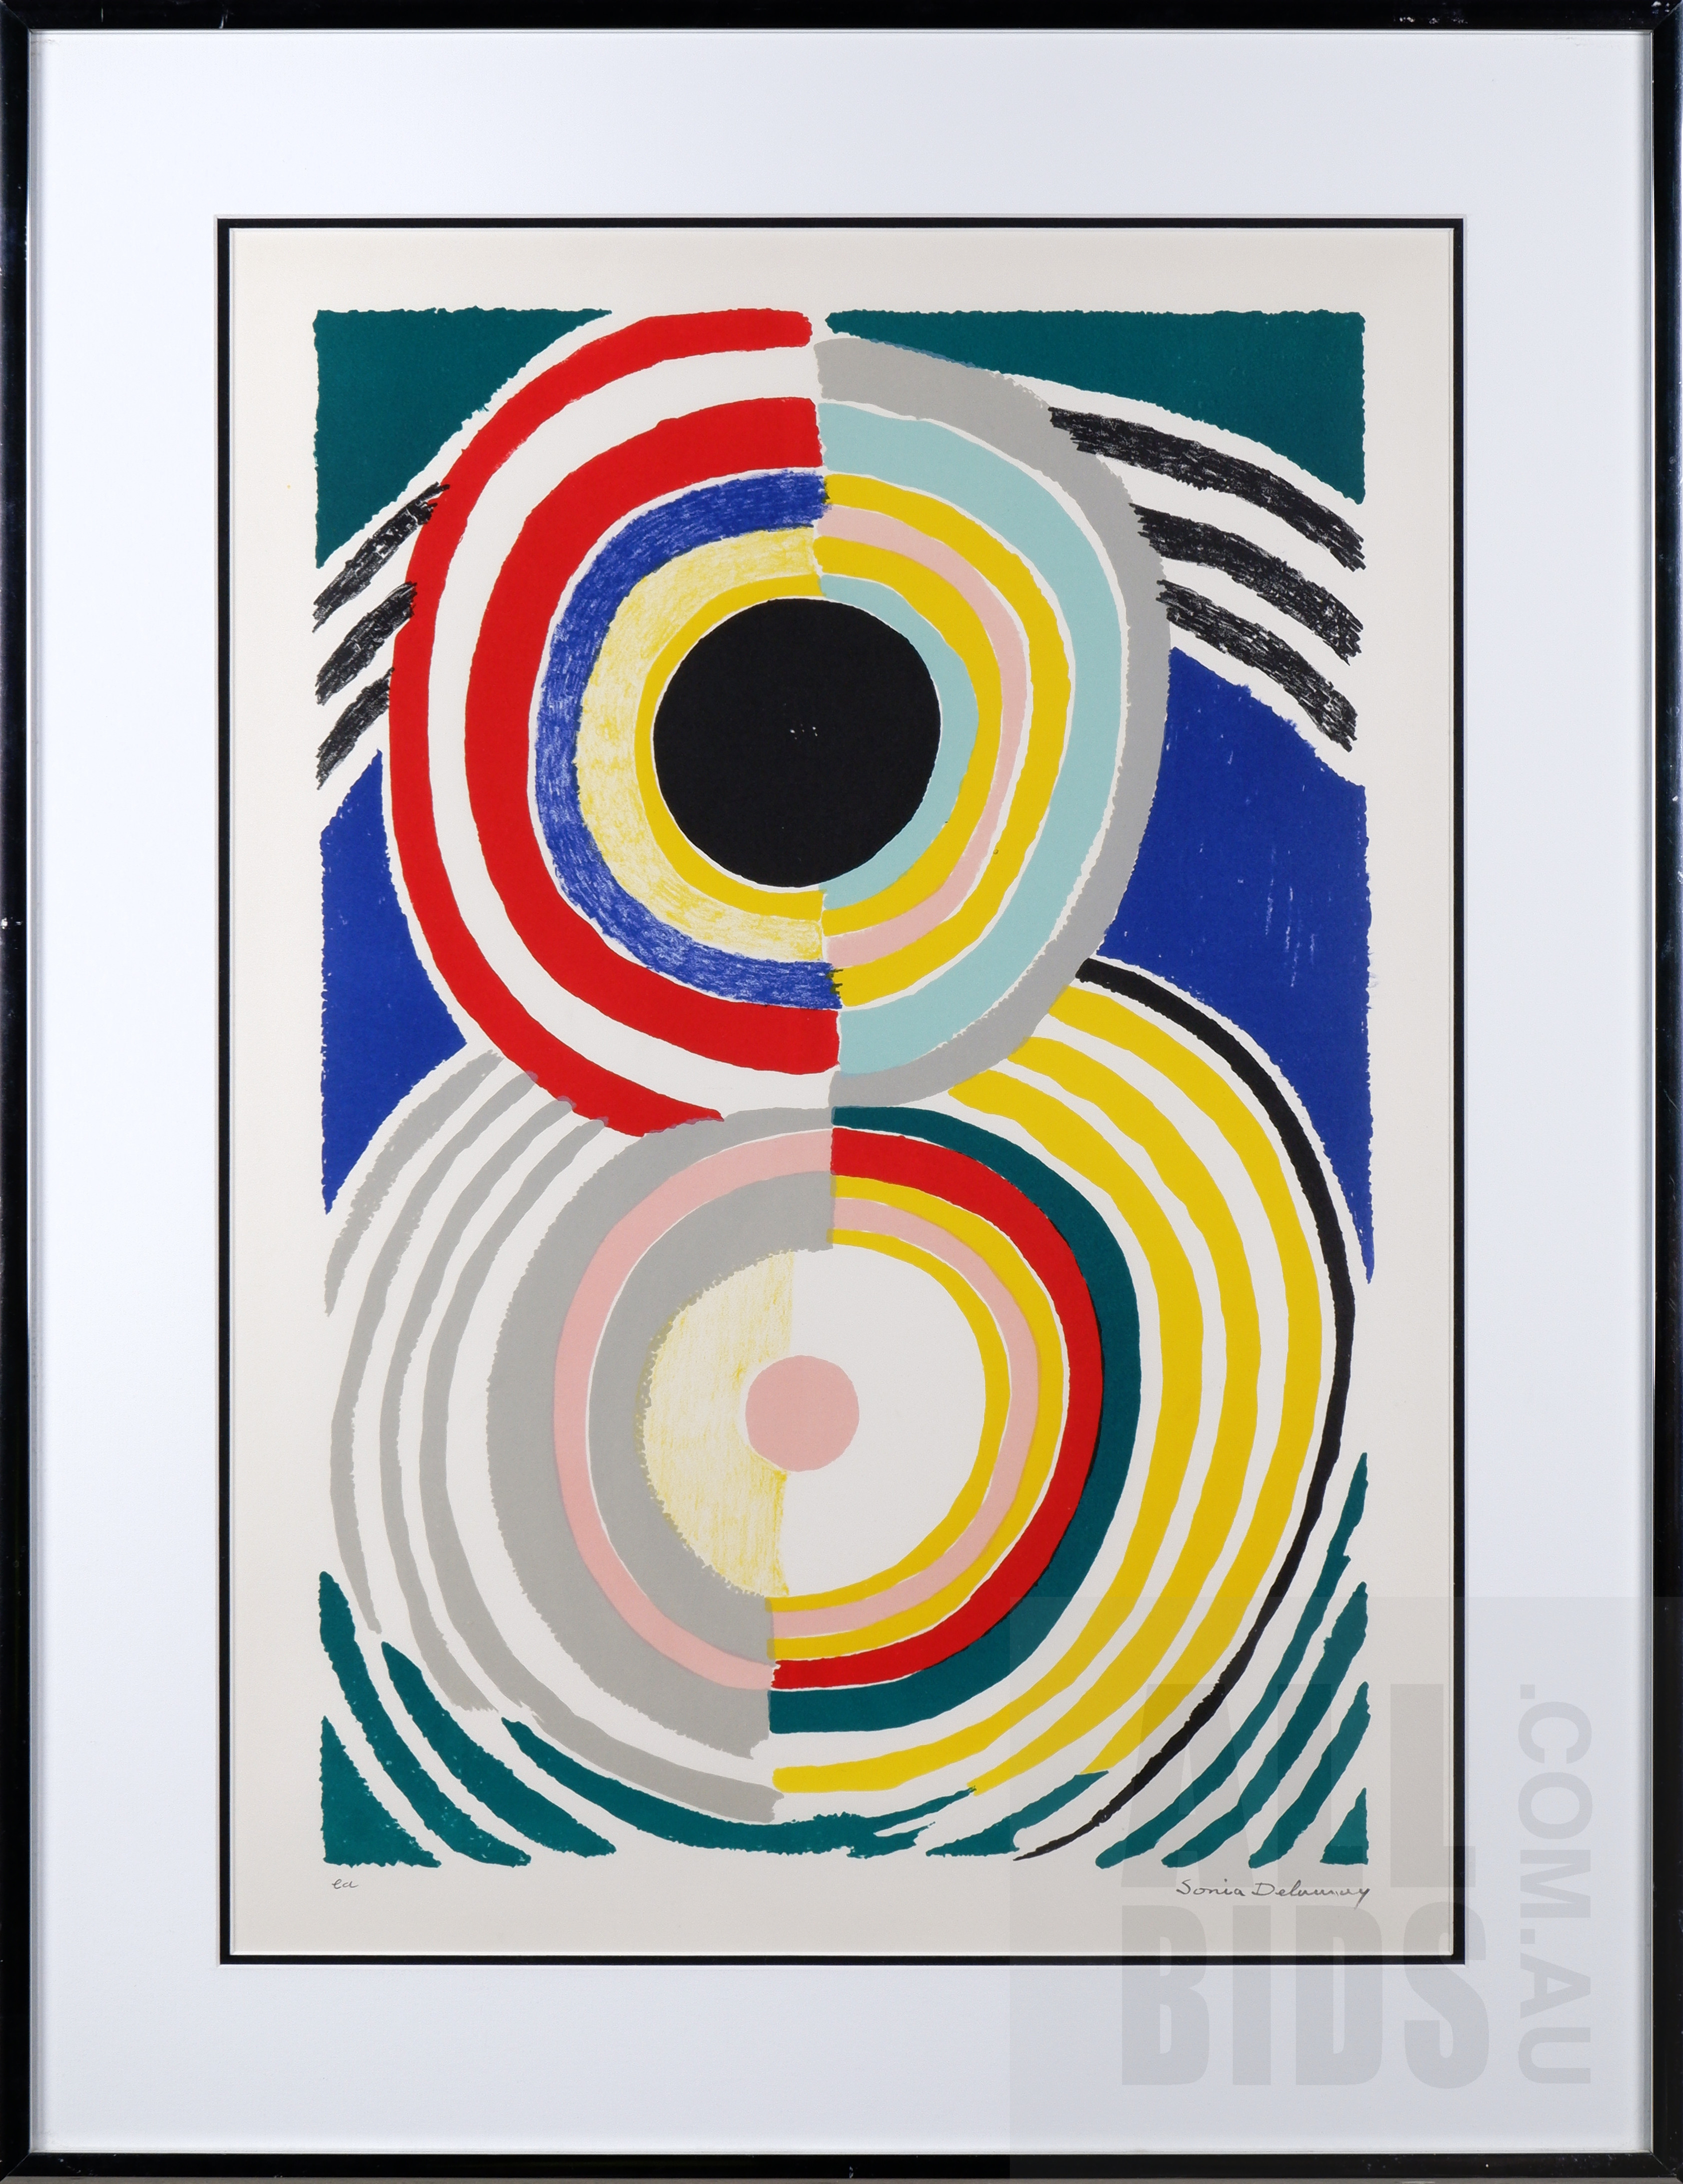 'Sonia Delaunay (1885-1995, French), Cible c1970, Lithograph, 55 x 37 cm (image size)'